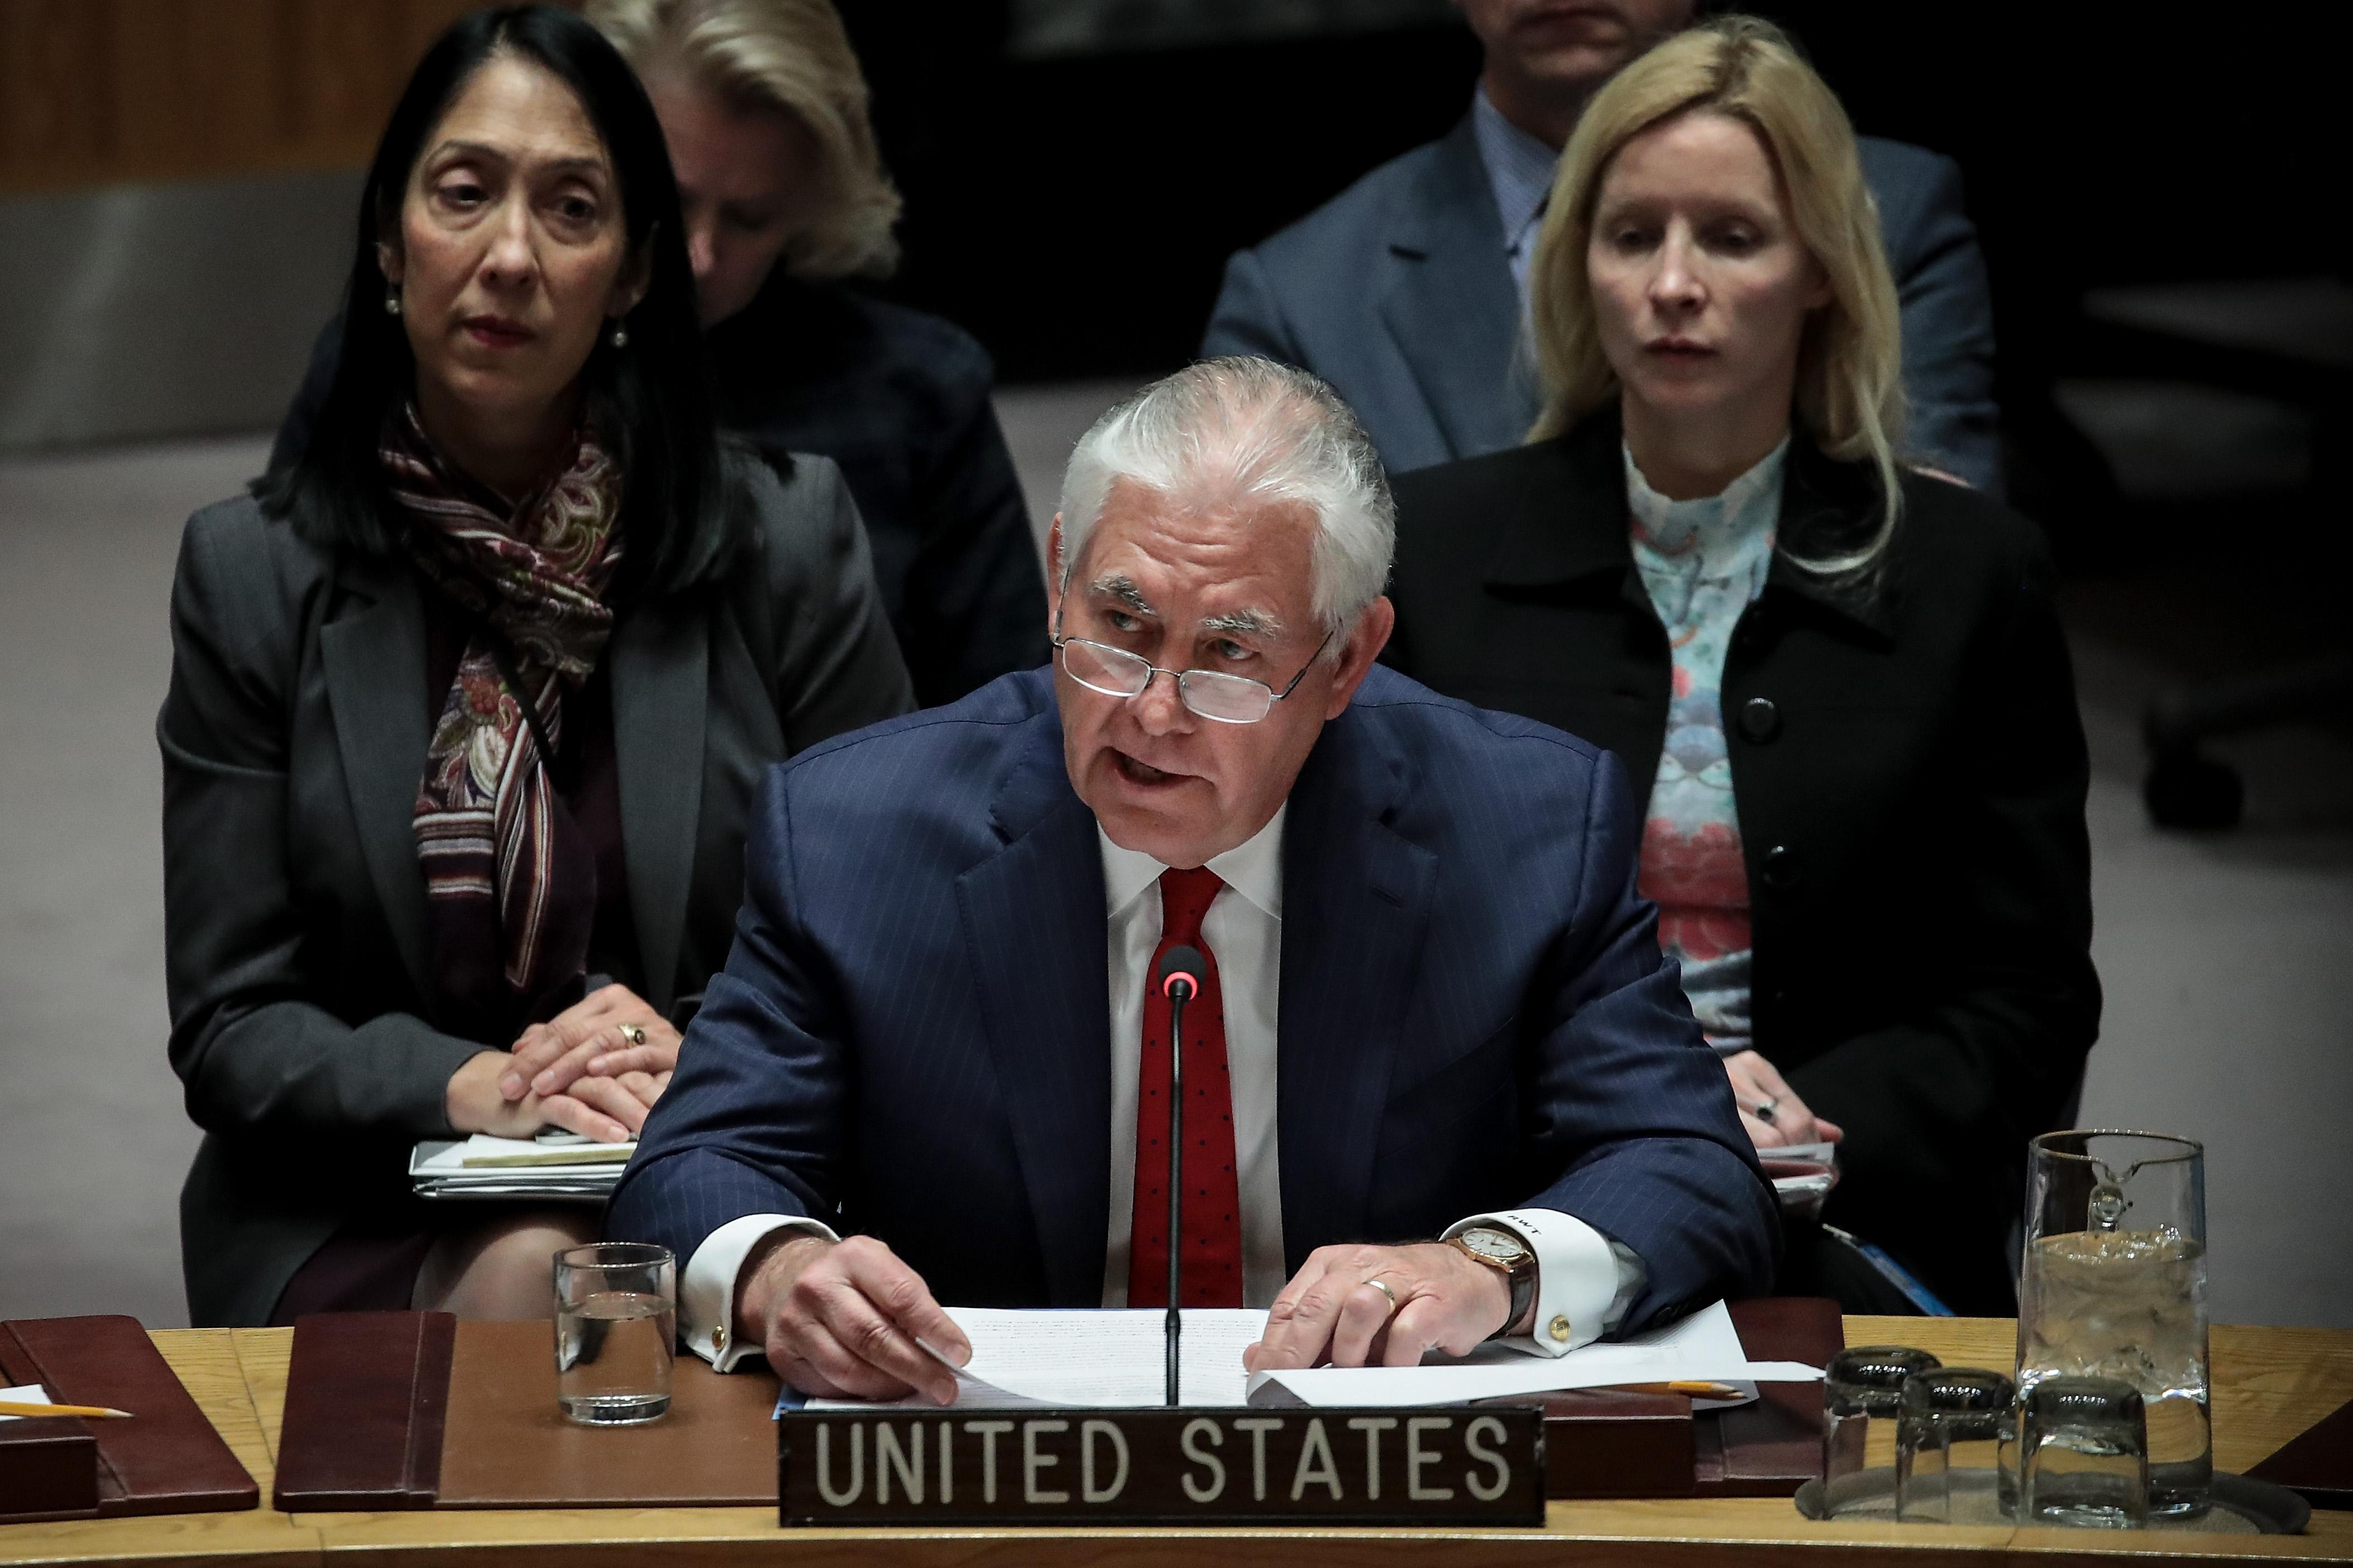 NEW YORK, NY - DECEMBER 15: U.S. Secretary of State Rex Tillerson speaks during a United Nations Security Council meeting concerning North Korea's nuclear ambitions, December 15, 2017 in New York City. On Thursday, UN Secretary-General Antonio Guterres said that the Security Council resolutions on North Korea's nuclear programs must be fully implemented. (Photo by Drew Angerer/Getty Images)